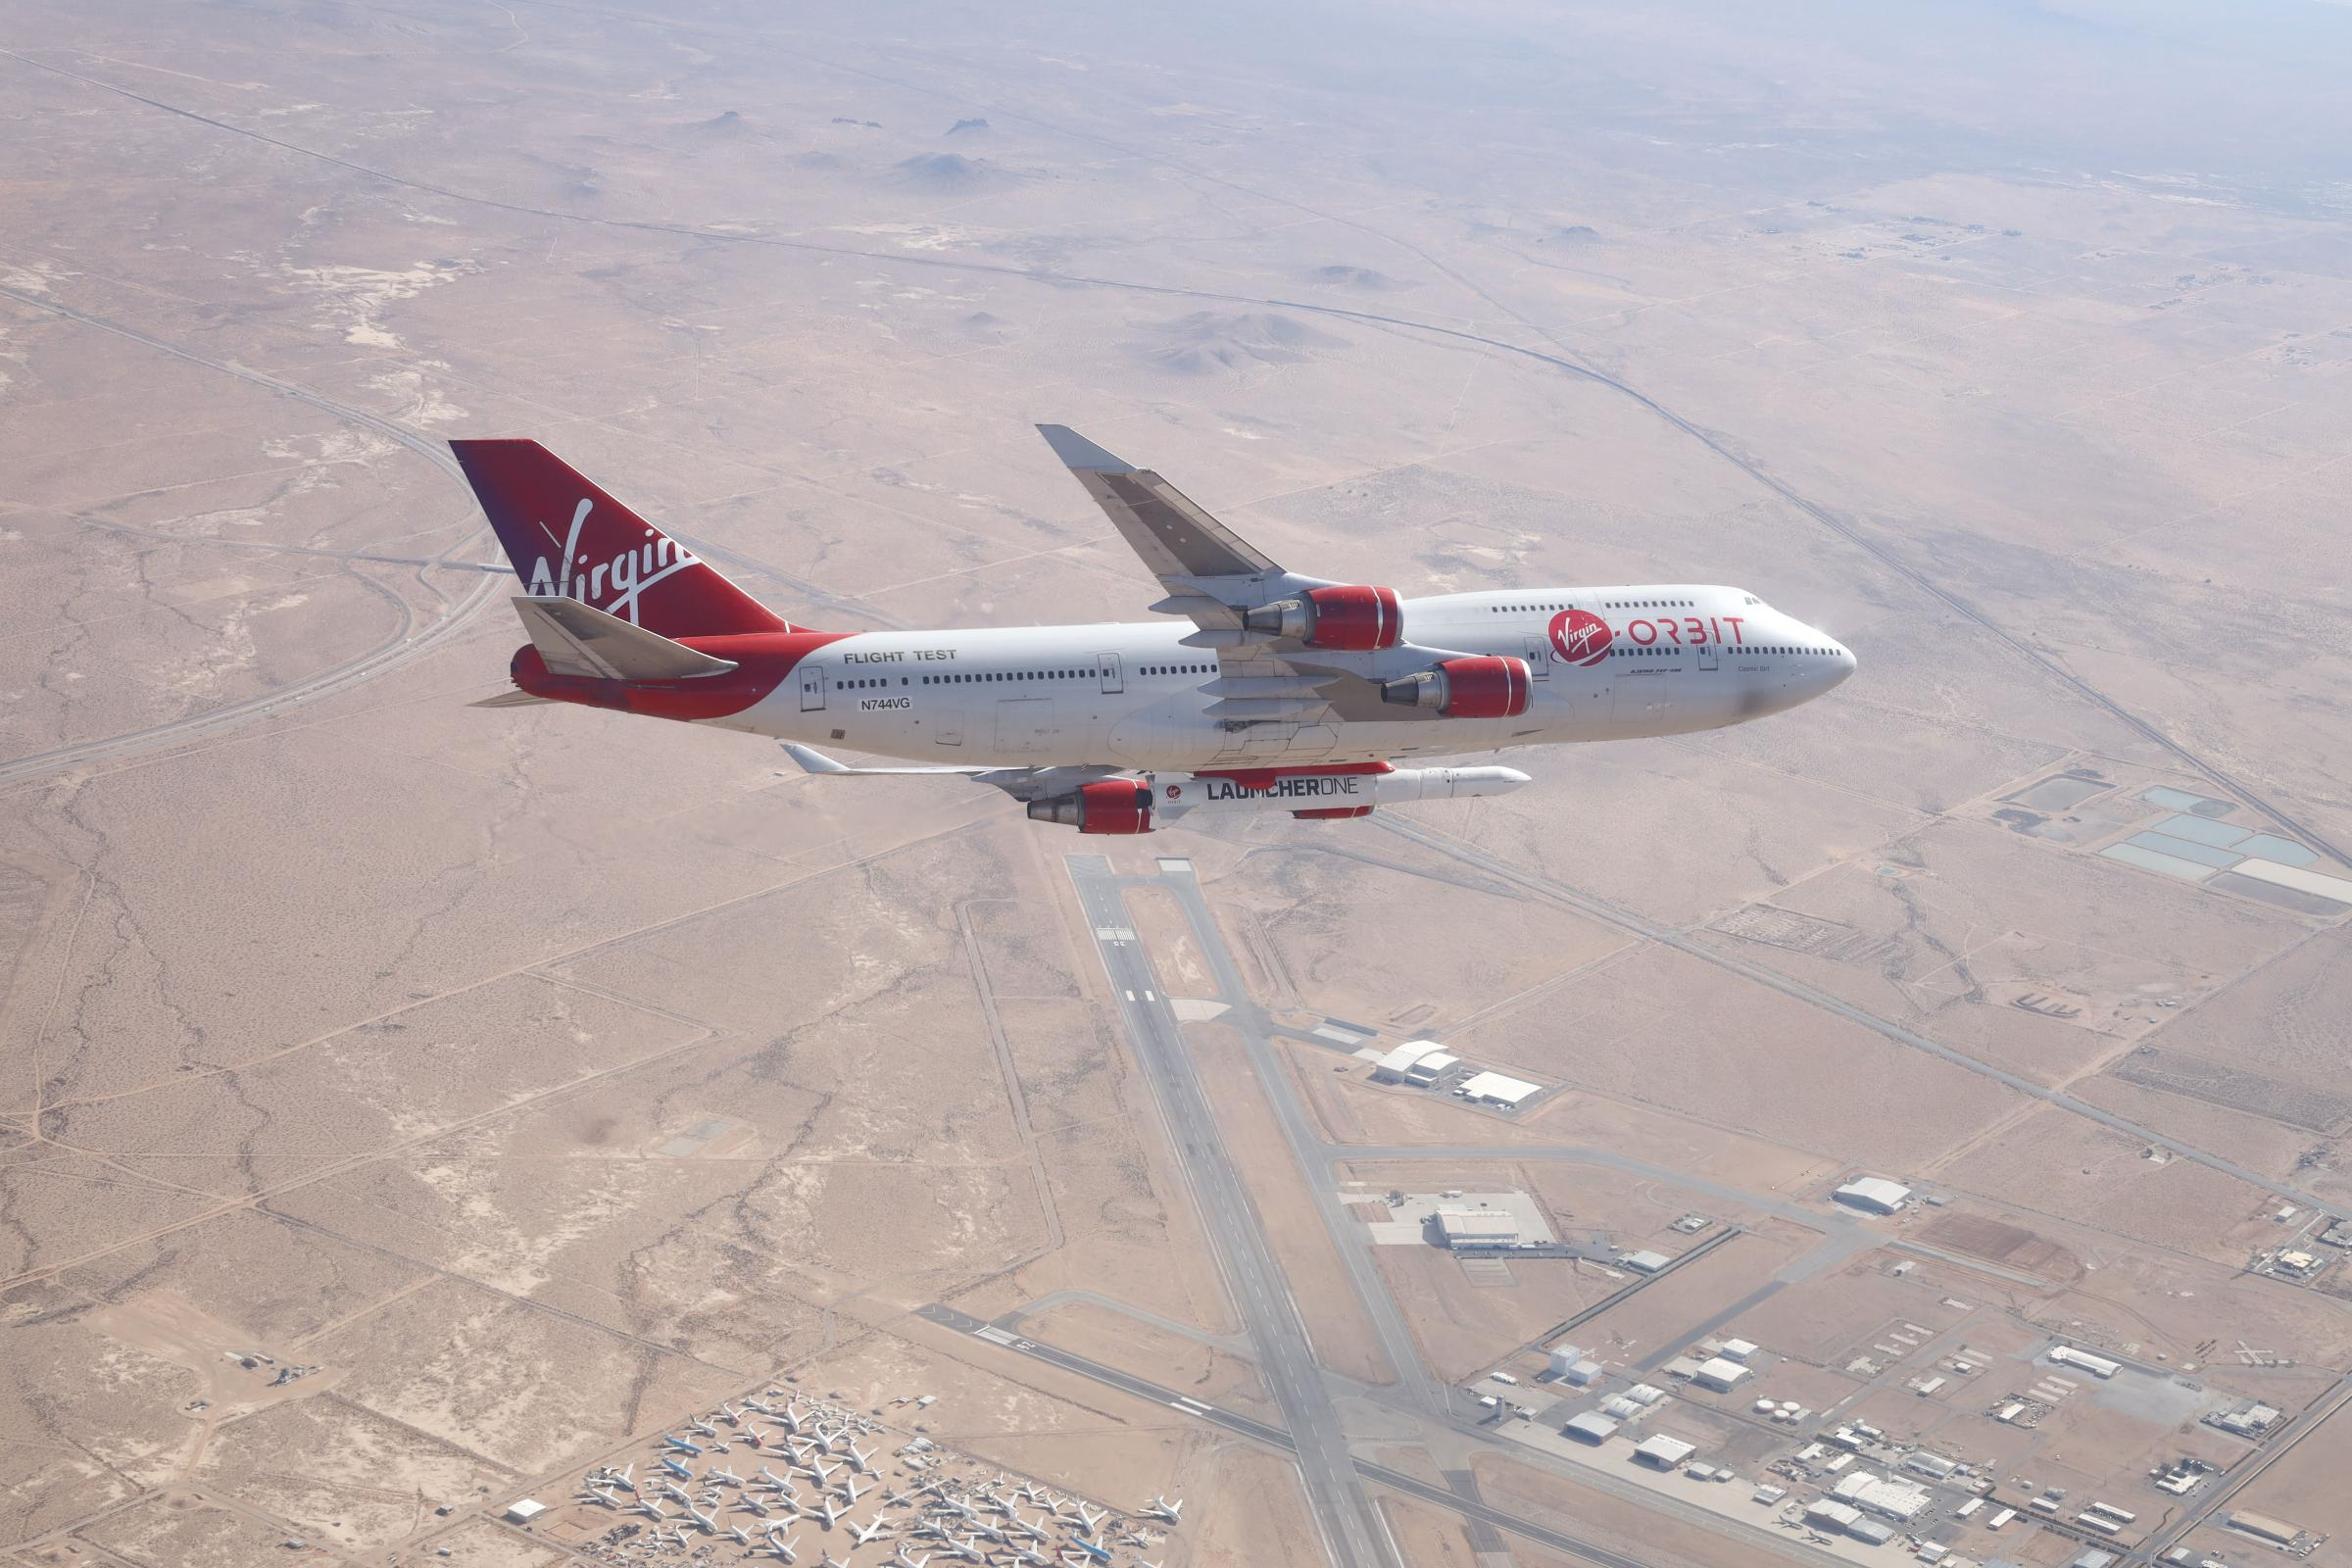 Virgin Orbit on a test flight